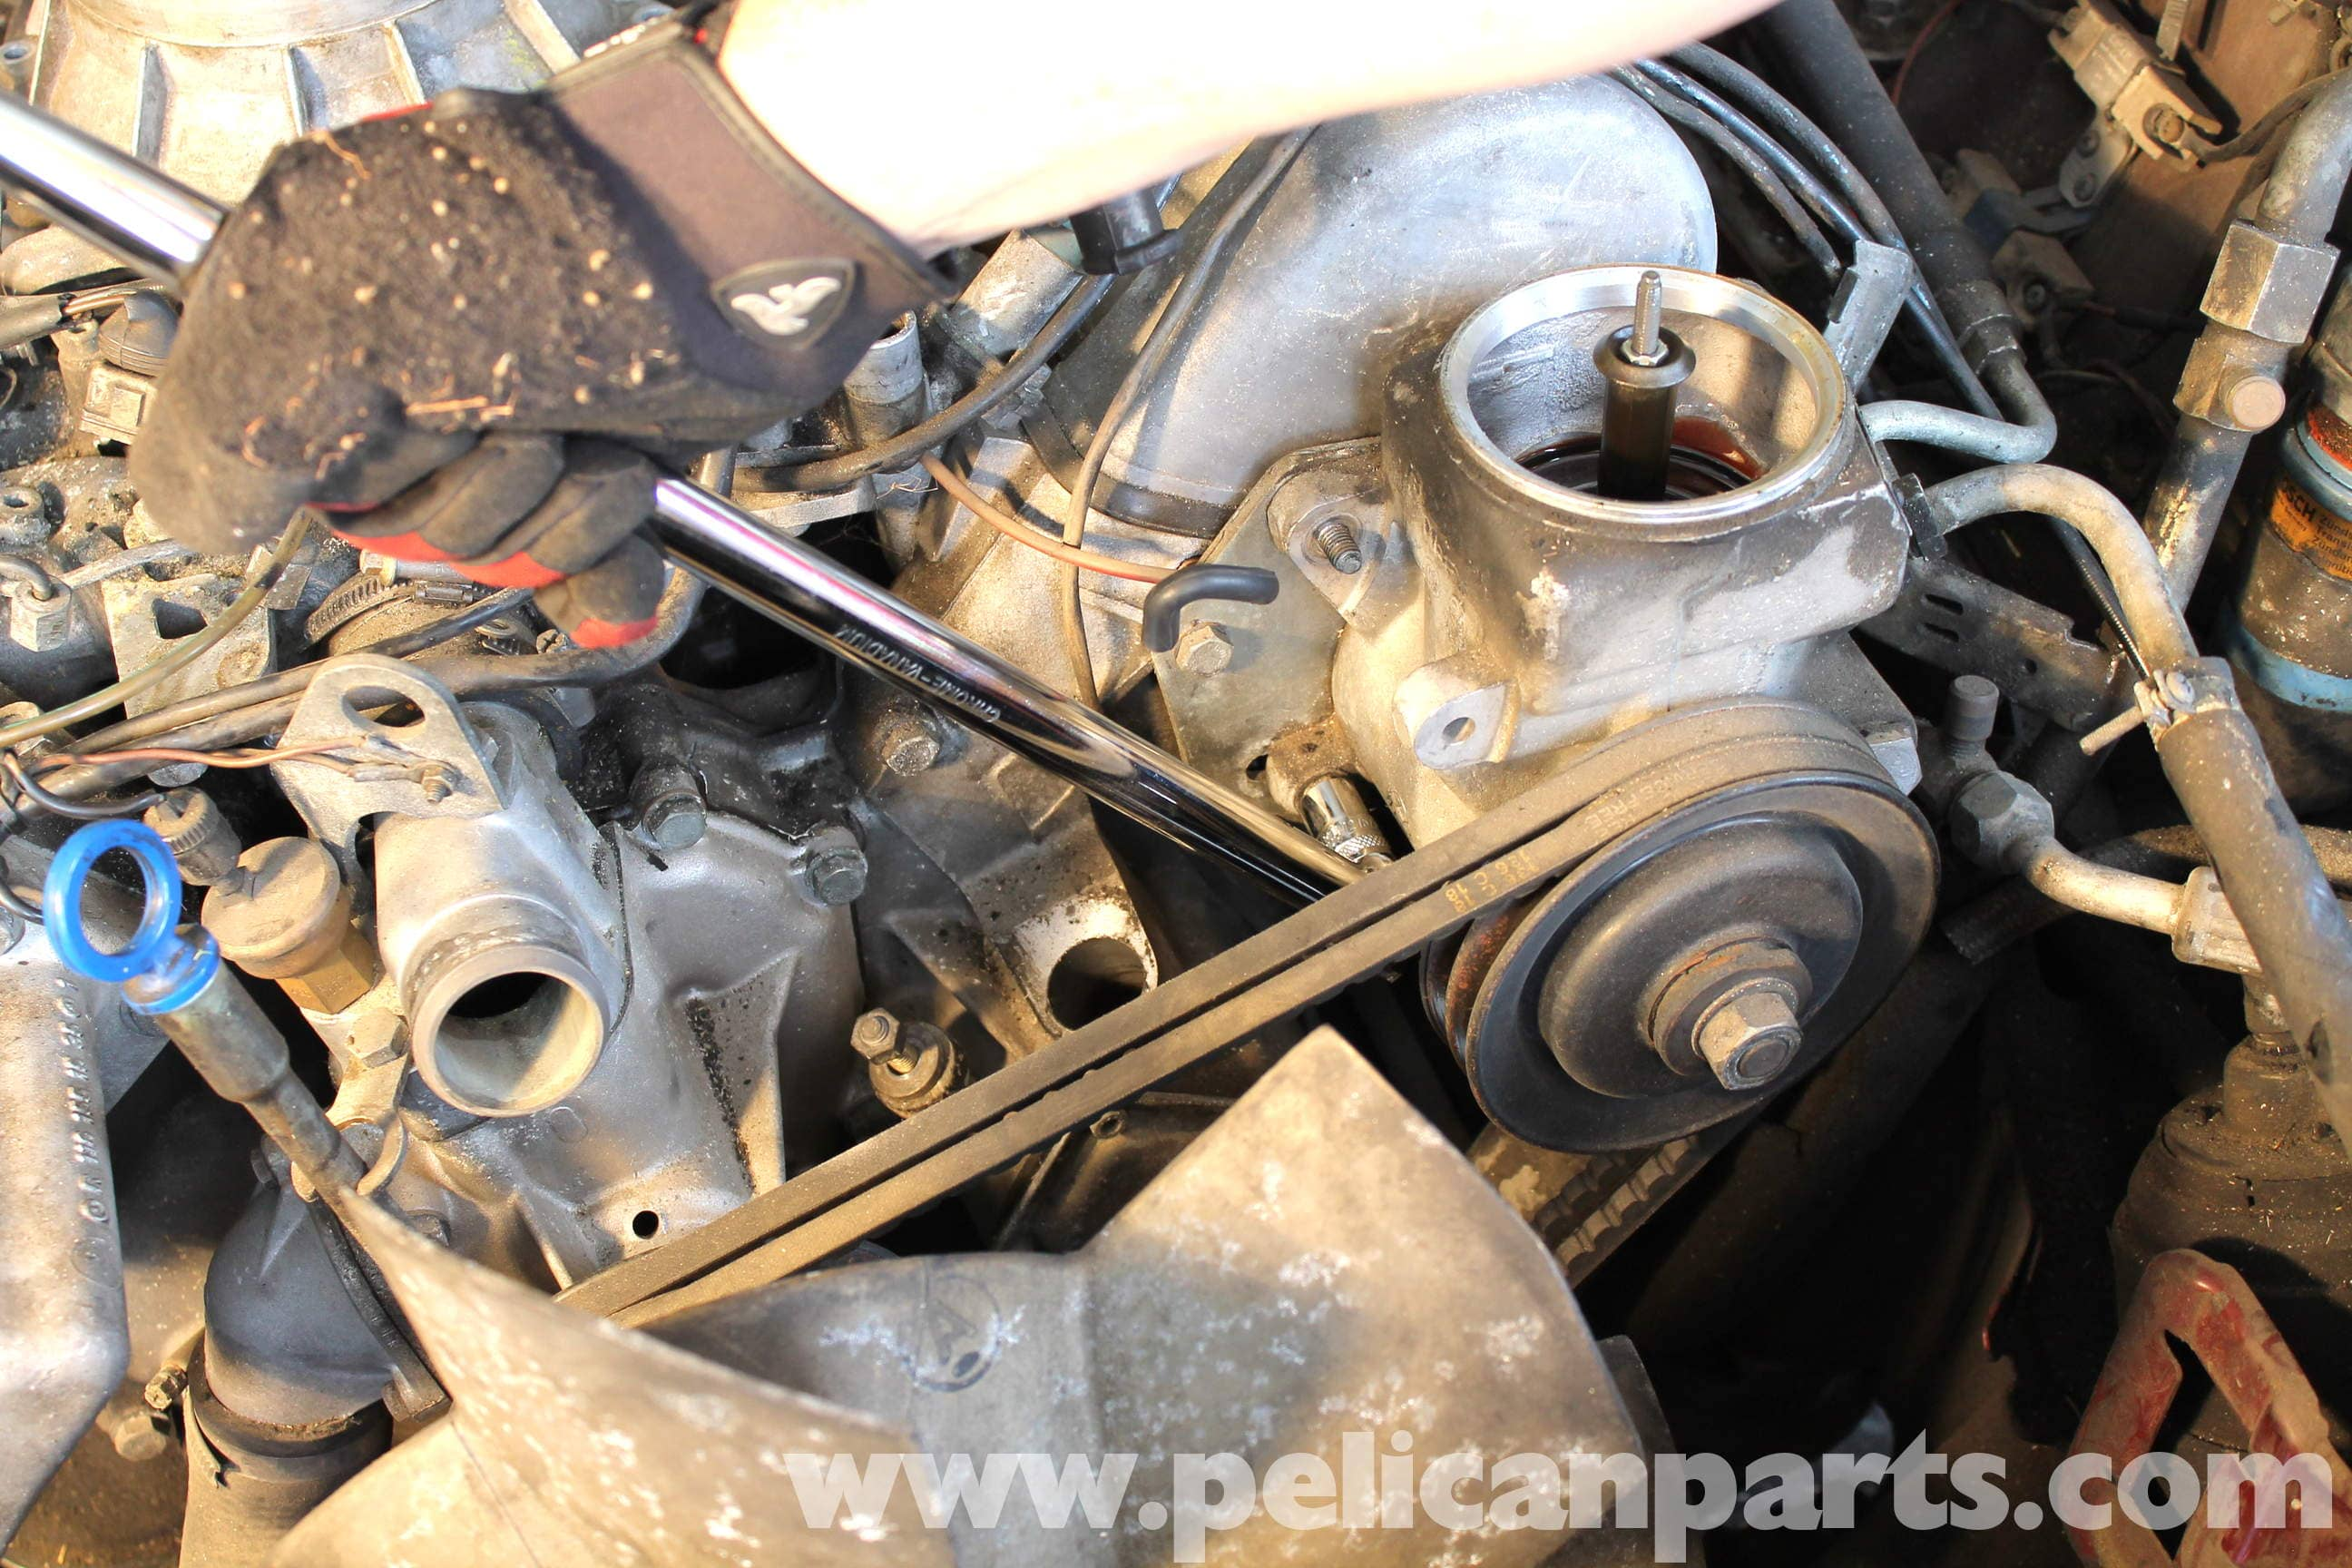 Mercedes benz r107 power steering fluid replacement 1972 for Looking for mercedes benz parts